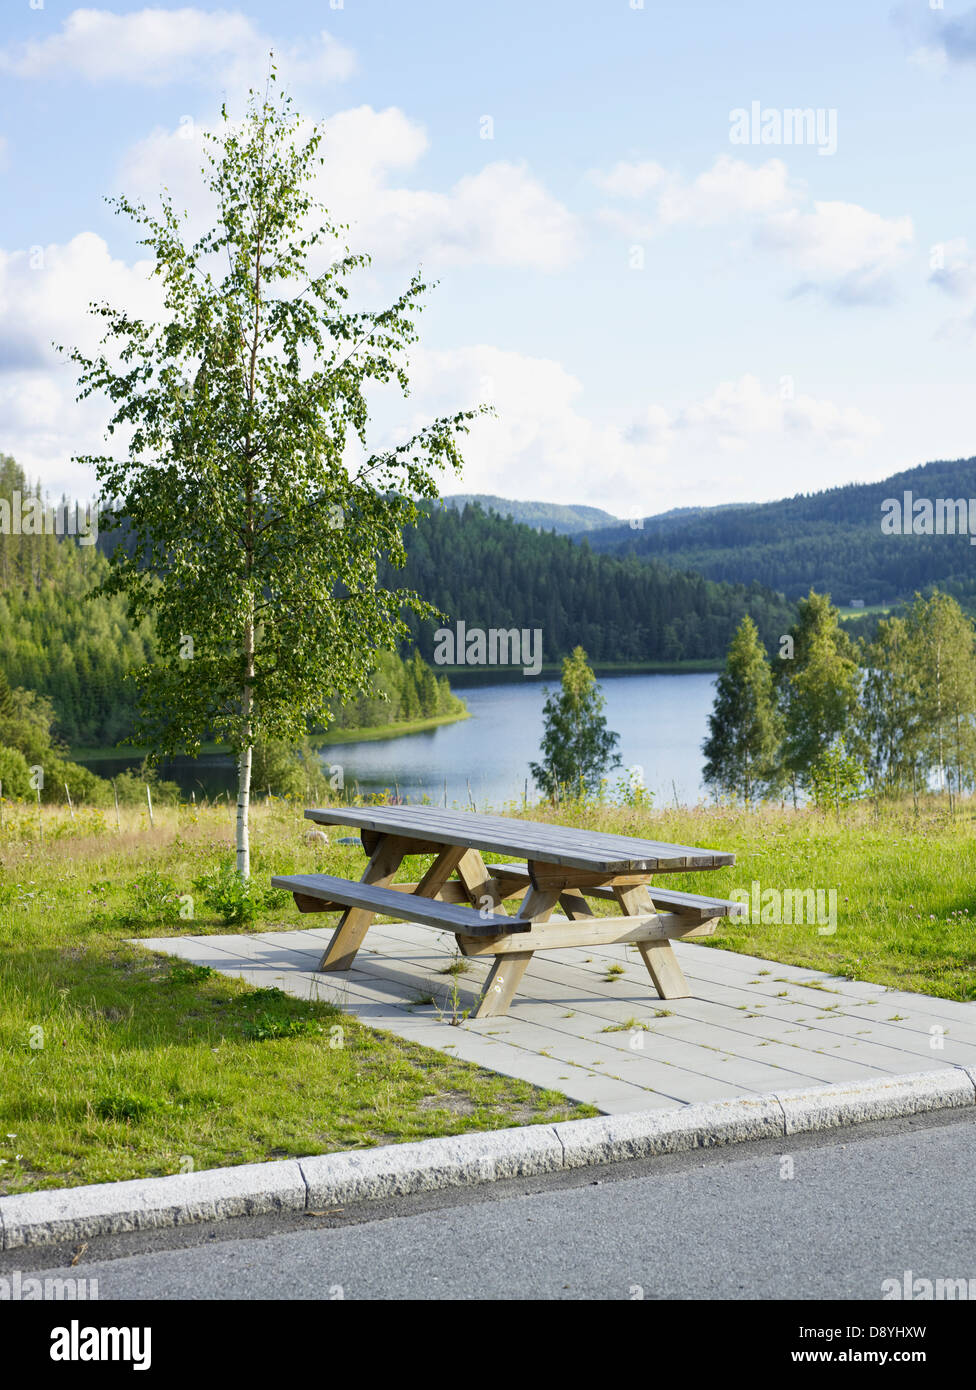 A resting-place in Hoga Kusten, Sweden. - Stock Image